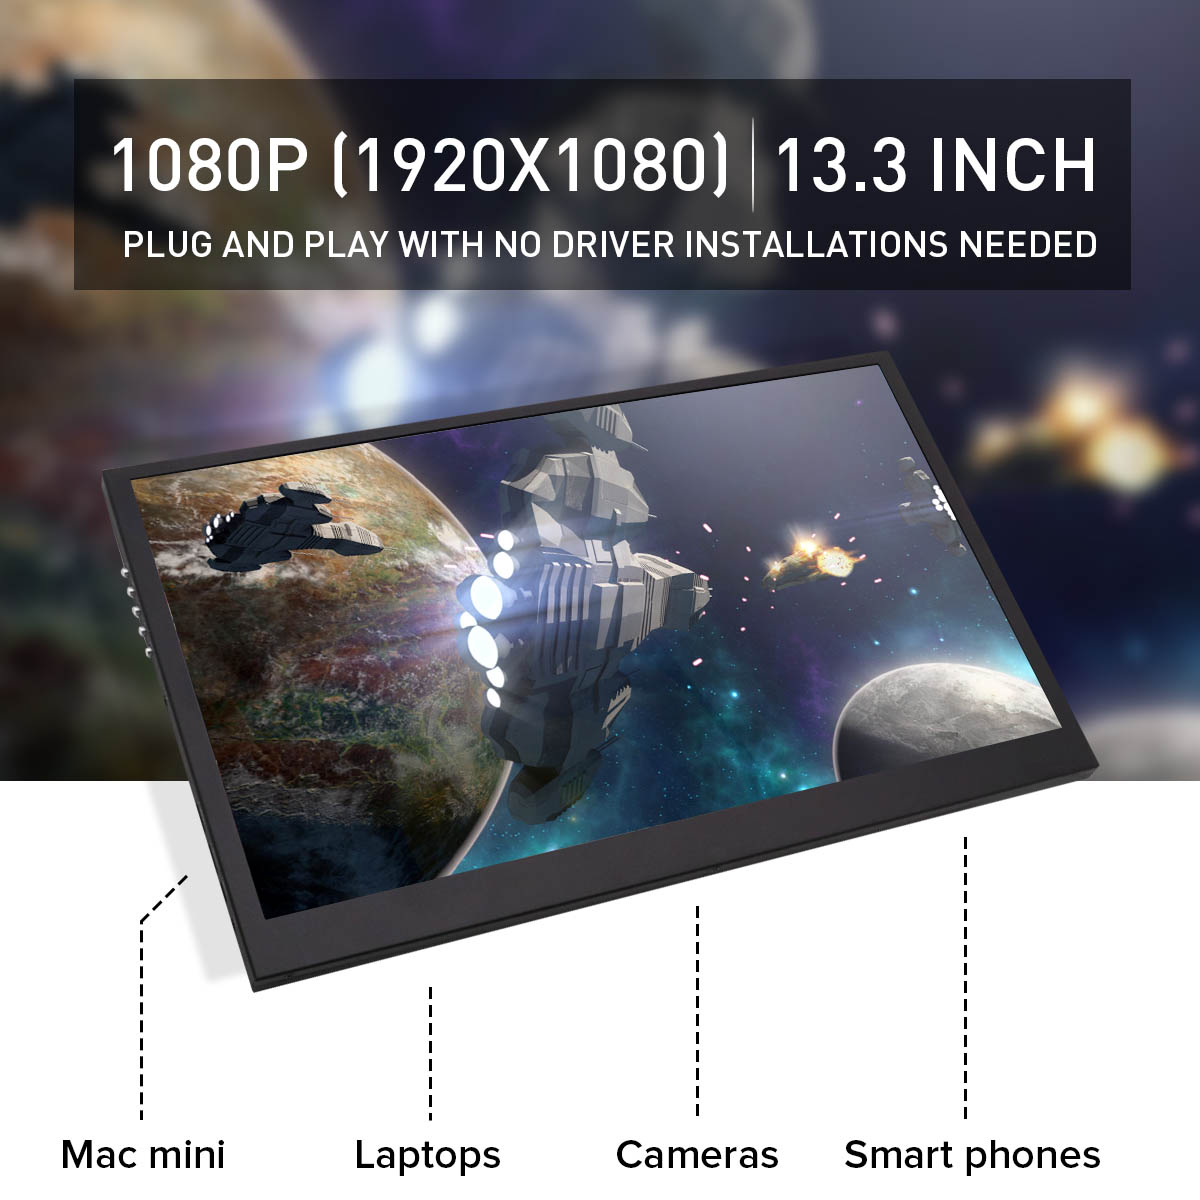 13.3 Inch Portable Monitor 1920*1080P IPS LCD Screen Display for PS3/PS4 for HDMI for XBOX One game Gifts13.3 Inch Portable Monitor 1920*1080P IPS LCD Screen Display for PS3/PS4 for HDMI for XBOX One game Gifts